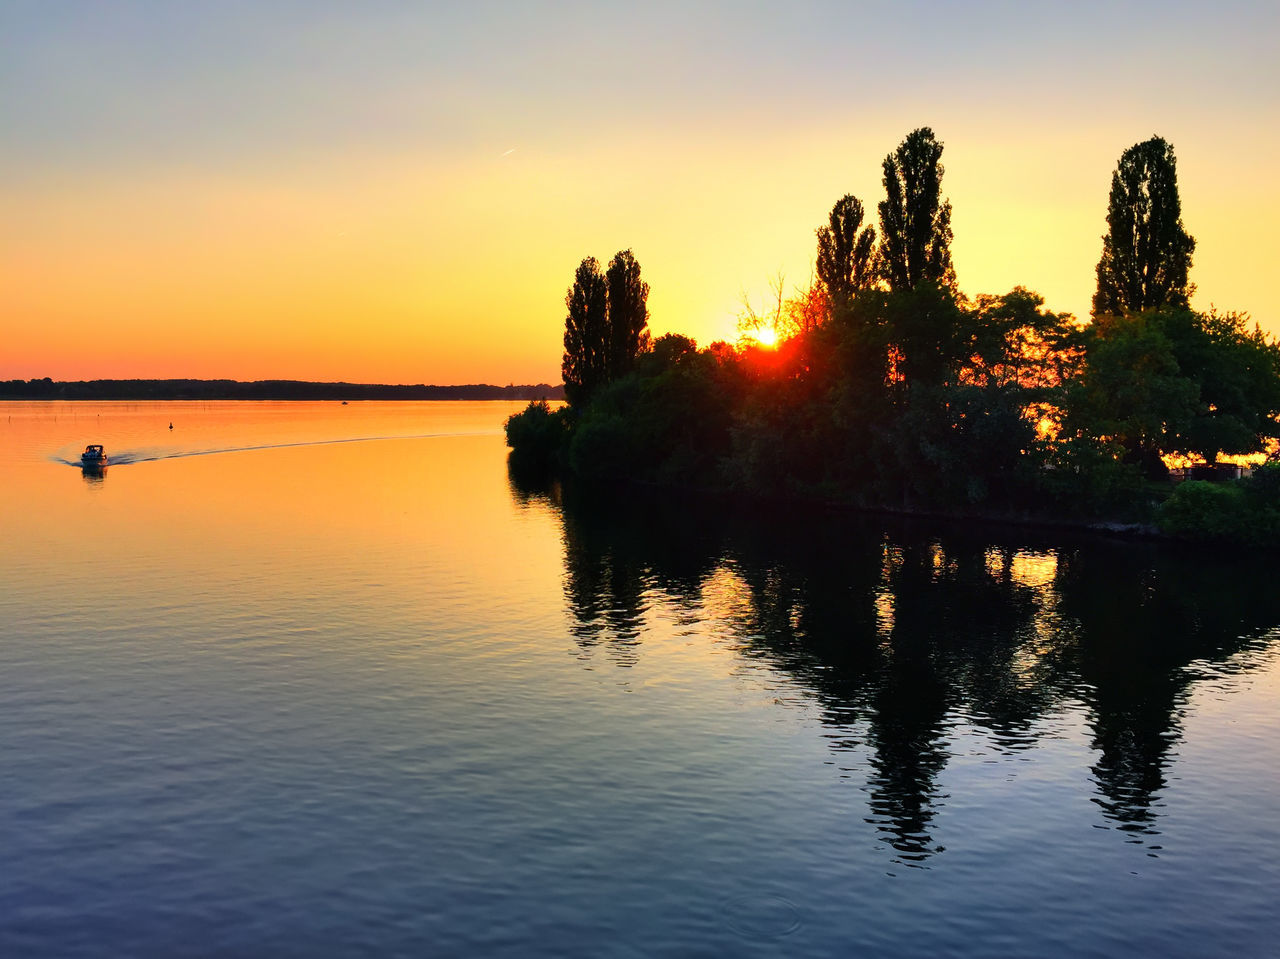 sunset, reflection, beauty in nature, water, silhouette, nature, scenics, sky, tranquility, orange color, tranquil scene, lake, outdoors, waterfront, no people, tree, day